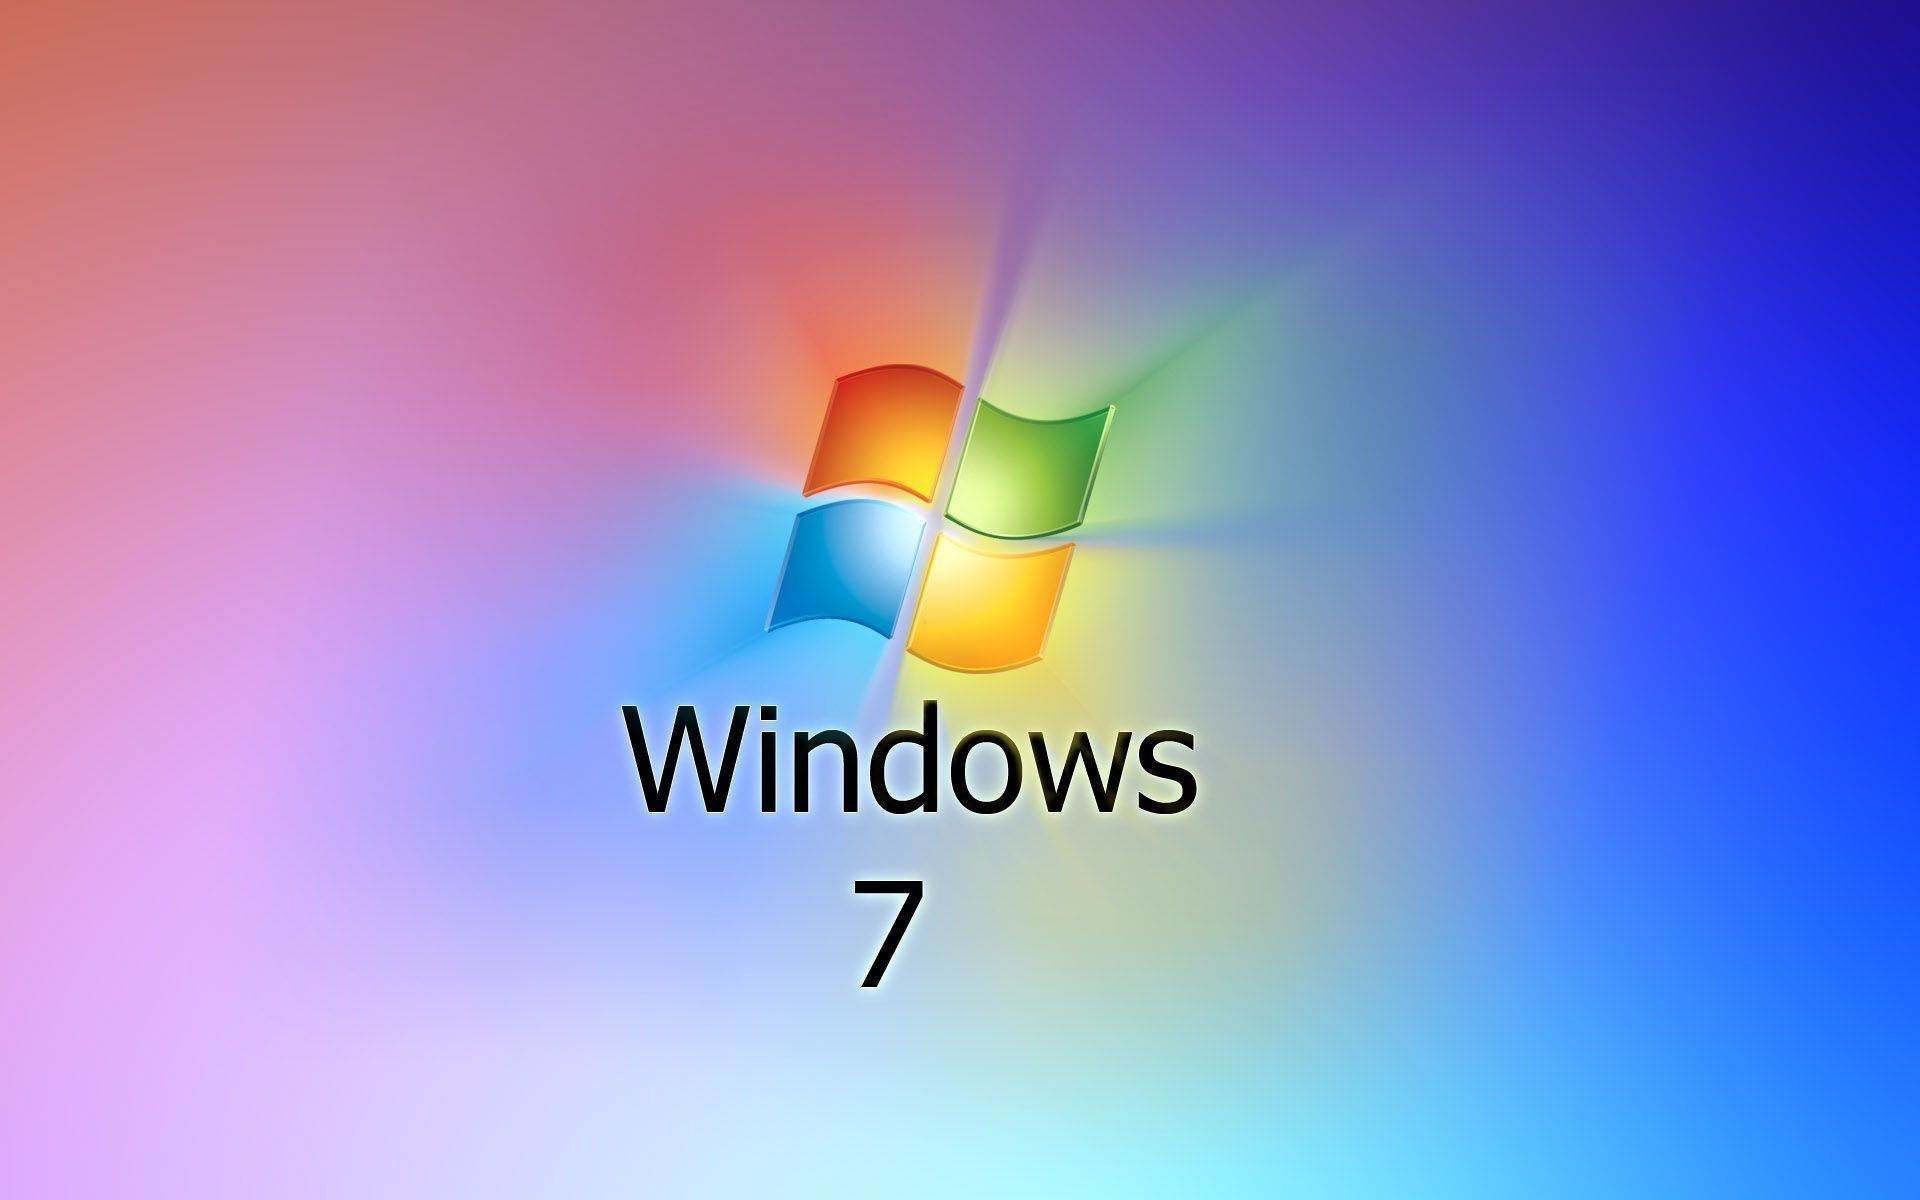 1920x1200 Free Desktop Backgrounds For Windows Wallpaper Cave Windows 7 Logo 3D  Wallpaper Free Download 269 Wallpaper